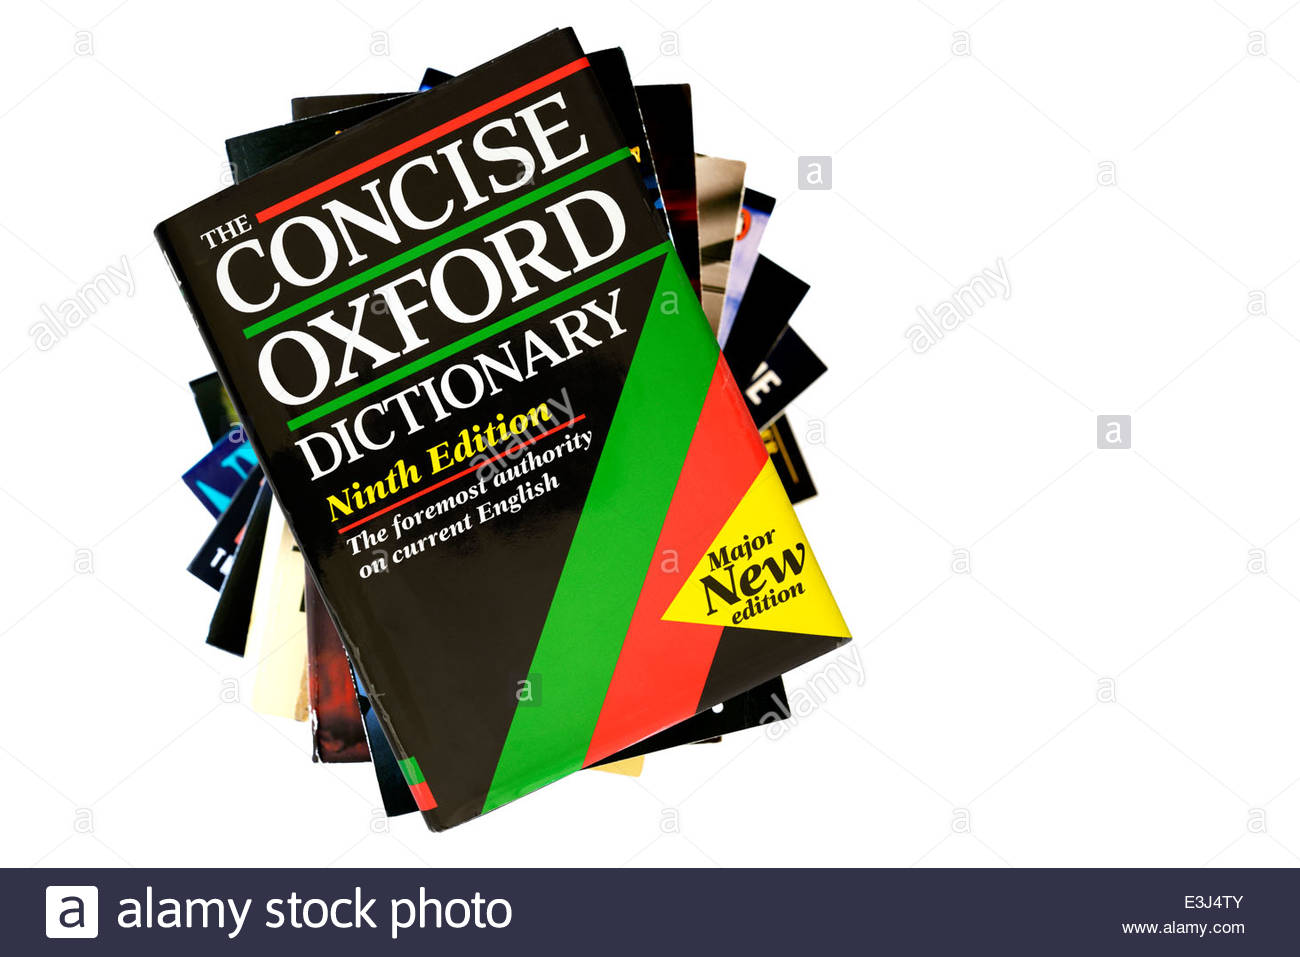 The Concise Oxford English Dictionary, stacked used books, England - Stock Image